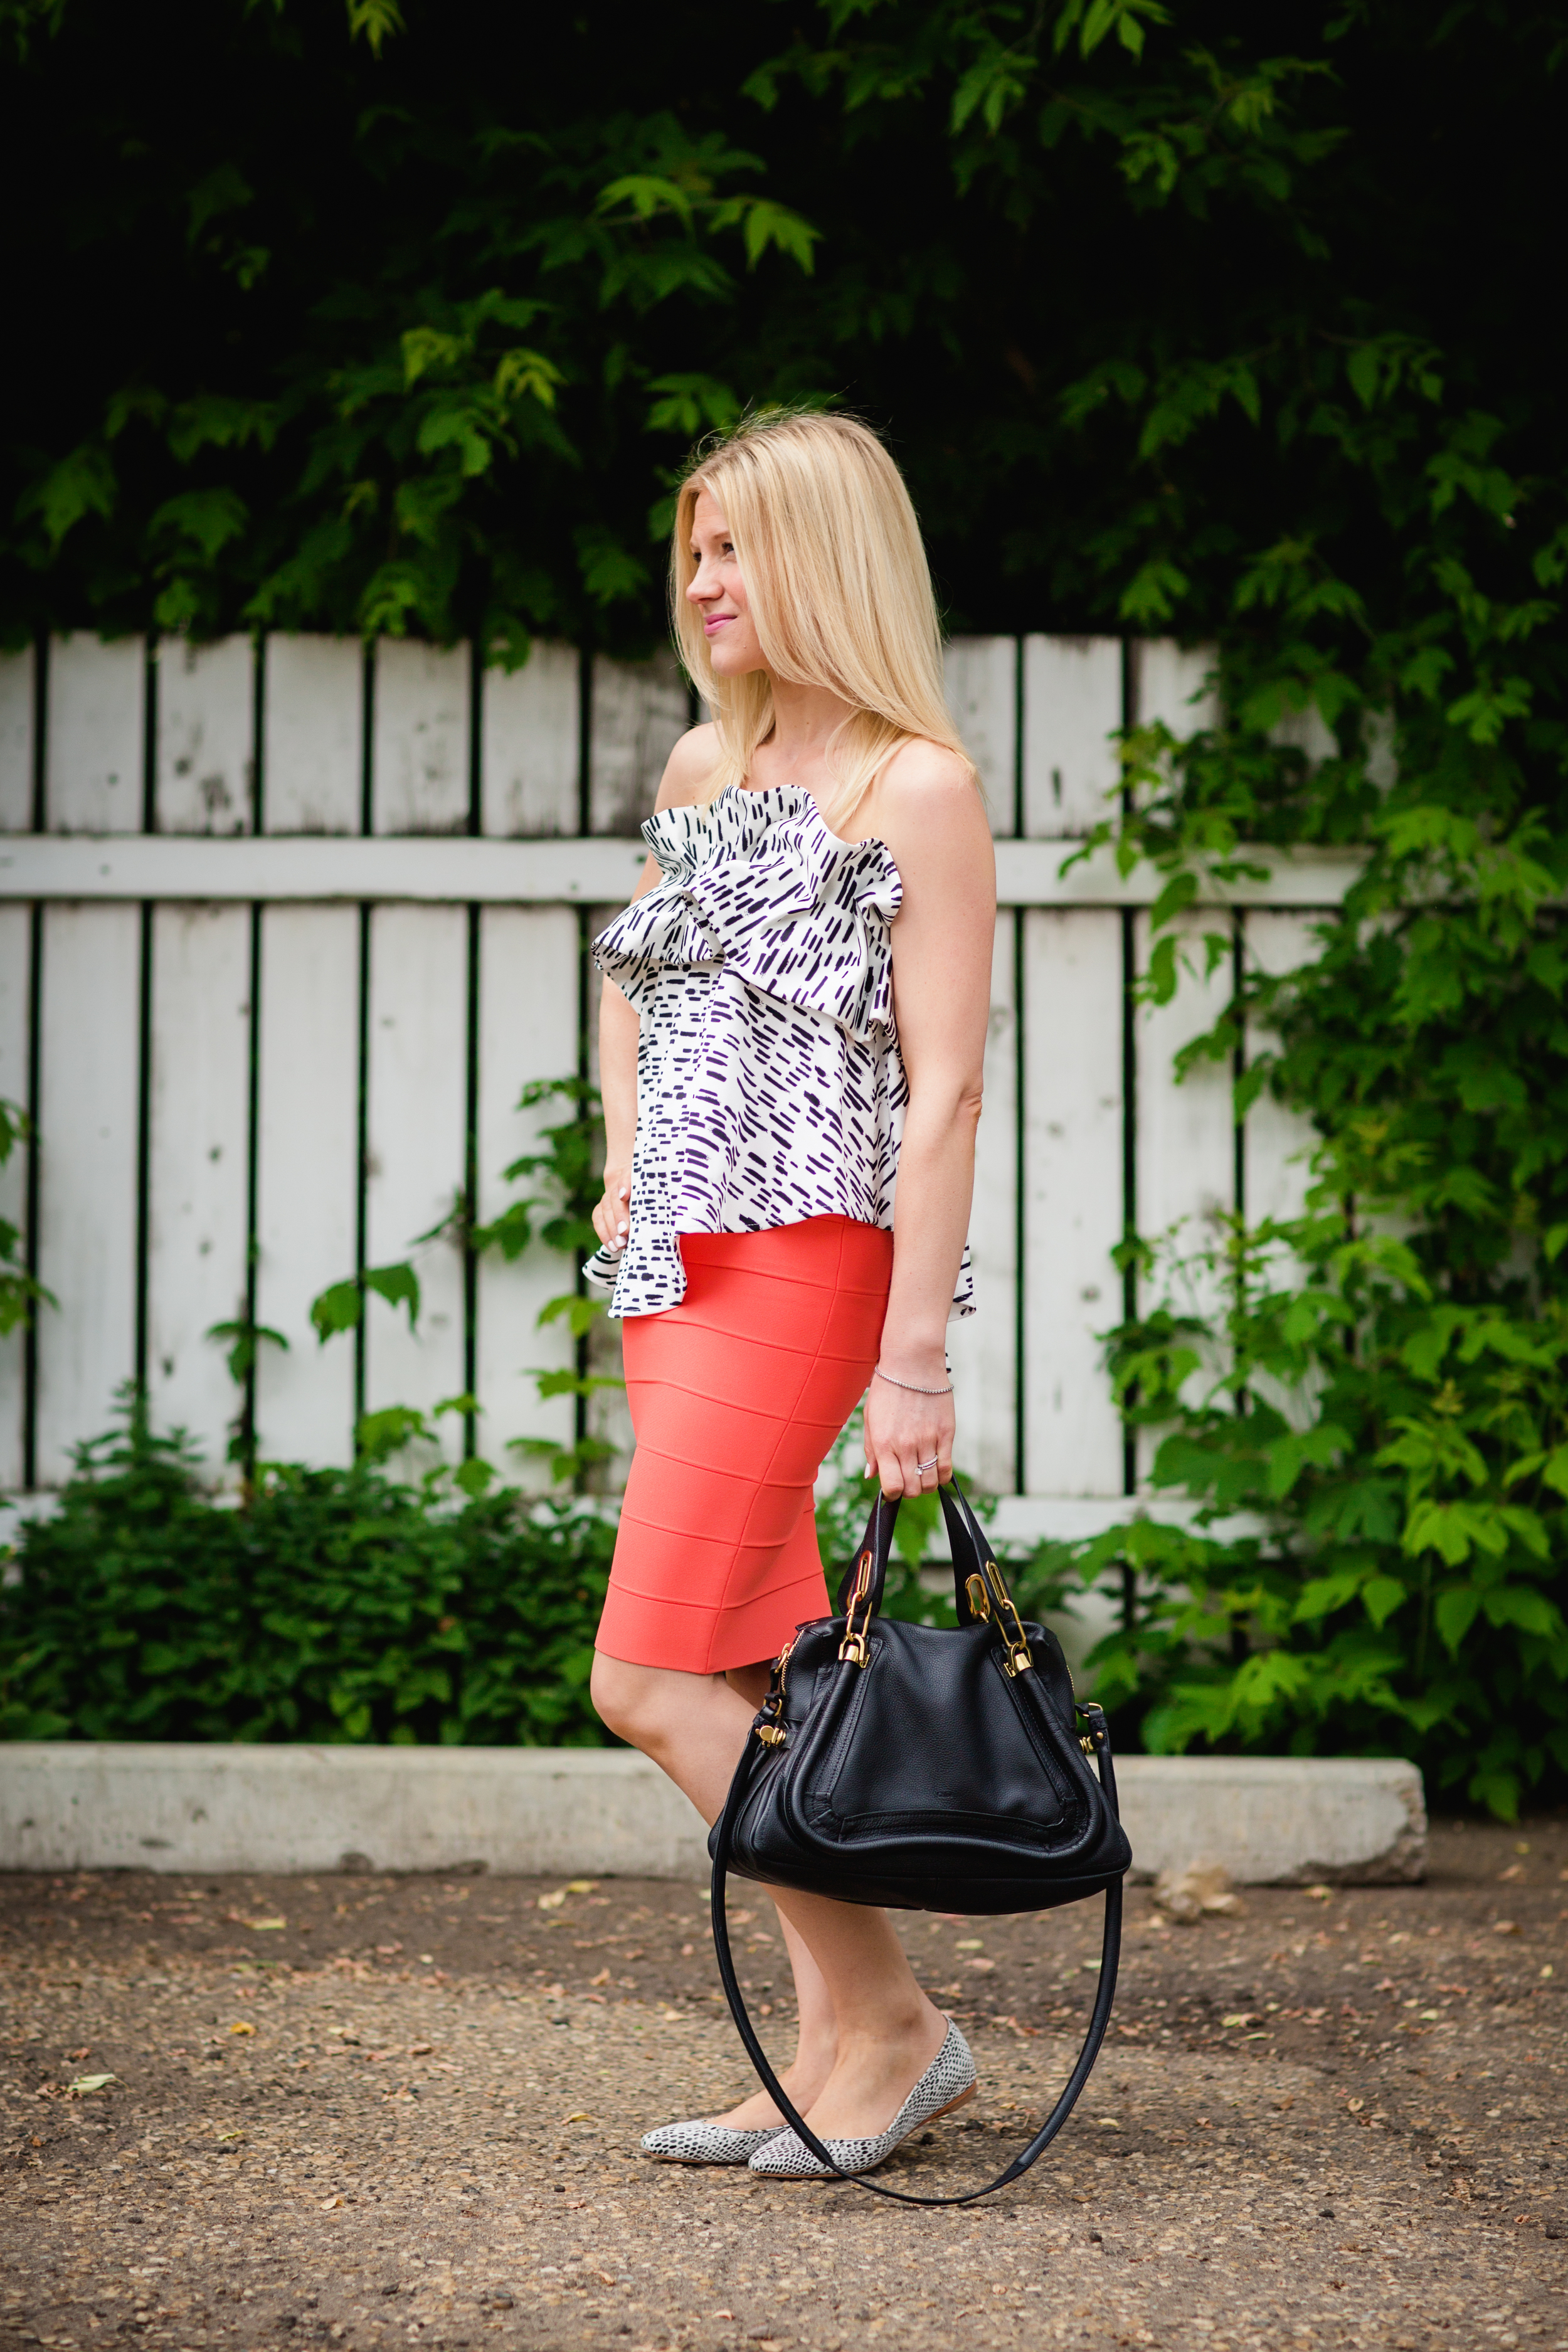 edmonton fashion blog, canadian fashion blog, style blog, look of the day, outfit of the day, fashion, style, canadian style blog, edmonton blog, fashion blog, edmonton style blog, outfit post, outfit ideas, edmonton fashion blogger, canadian fashion blogger, fashion blogger, style advice, fashion advice